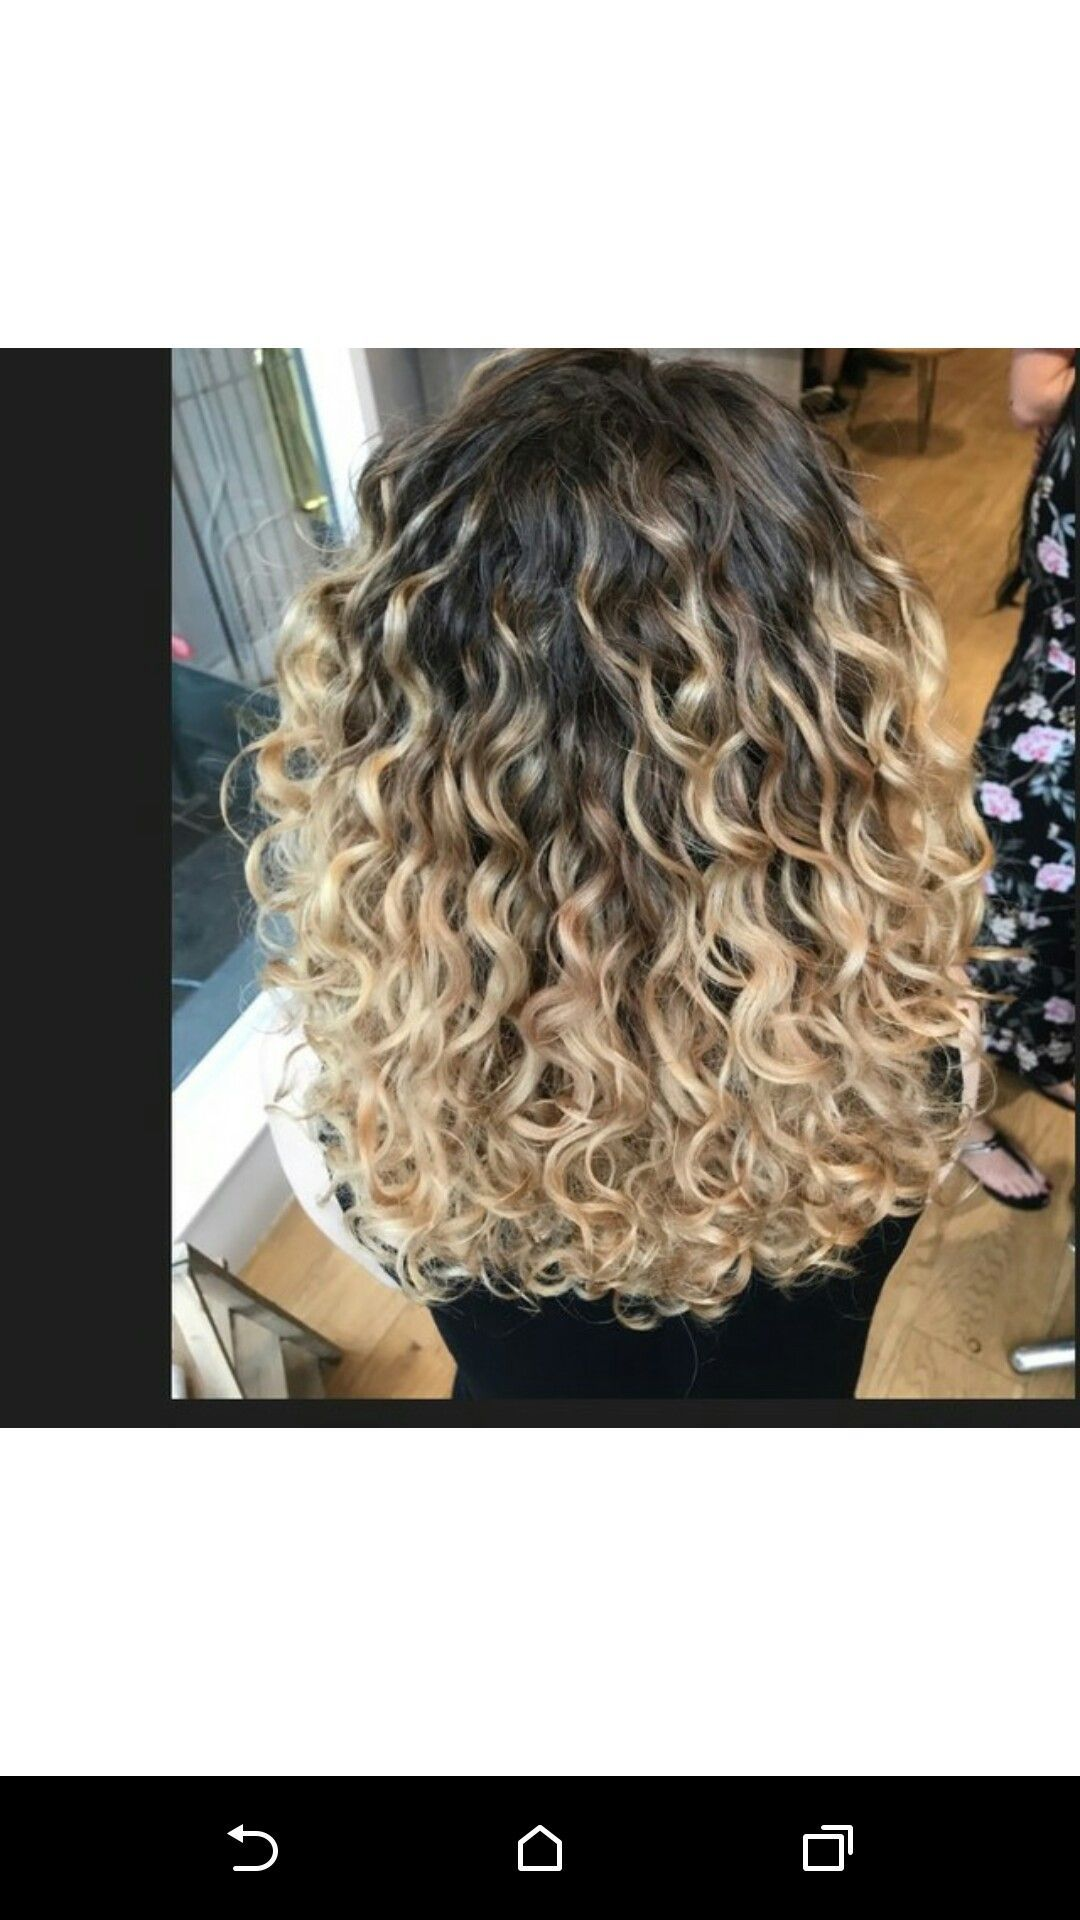 Naturally Curly Hair Blonde Ombre Balayage By Reegan At Spring Hair Salon In B In 2020 Ombre Curly Hair Curly Balayage Hair Balayage Hair Blonde